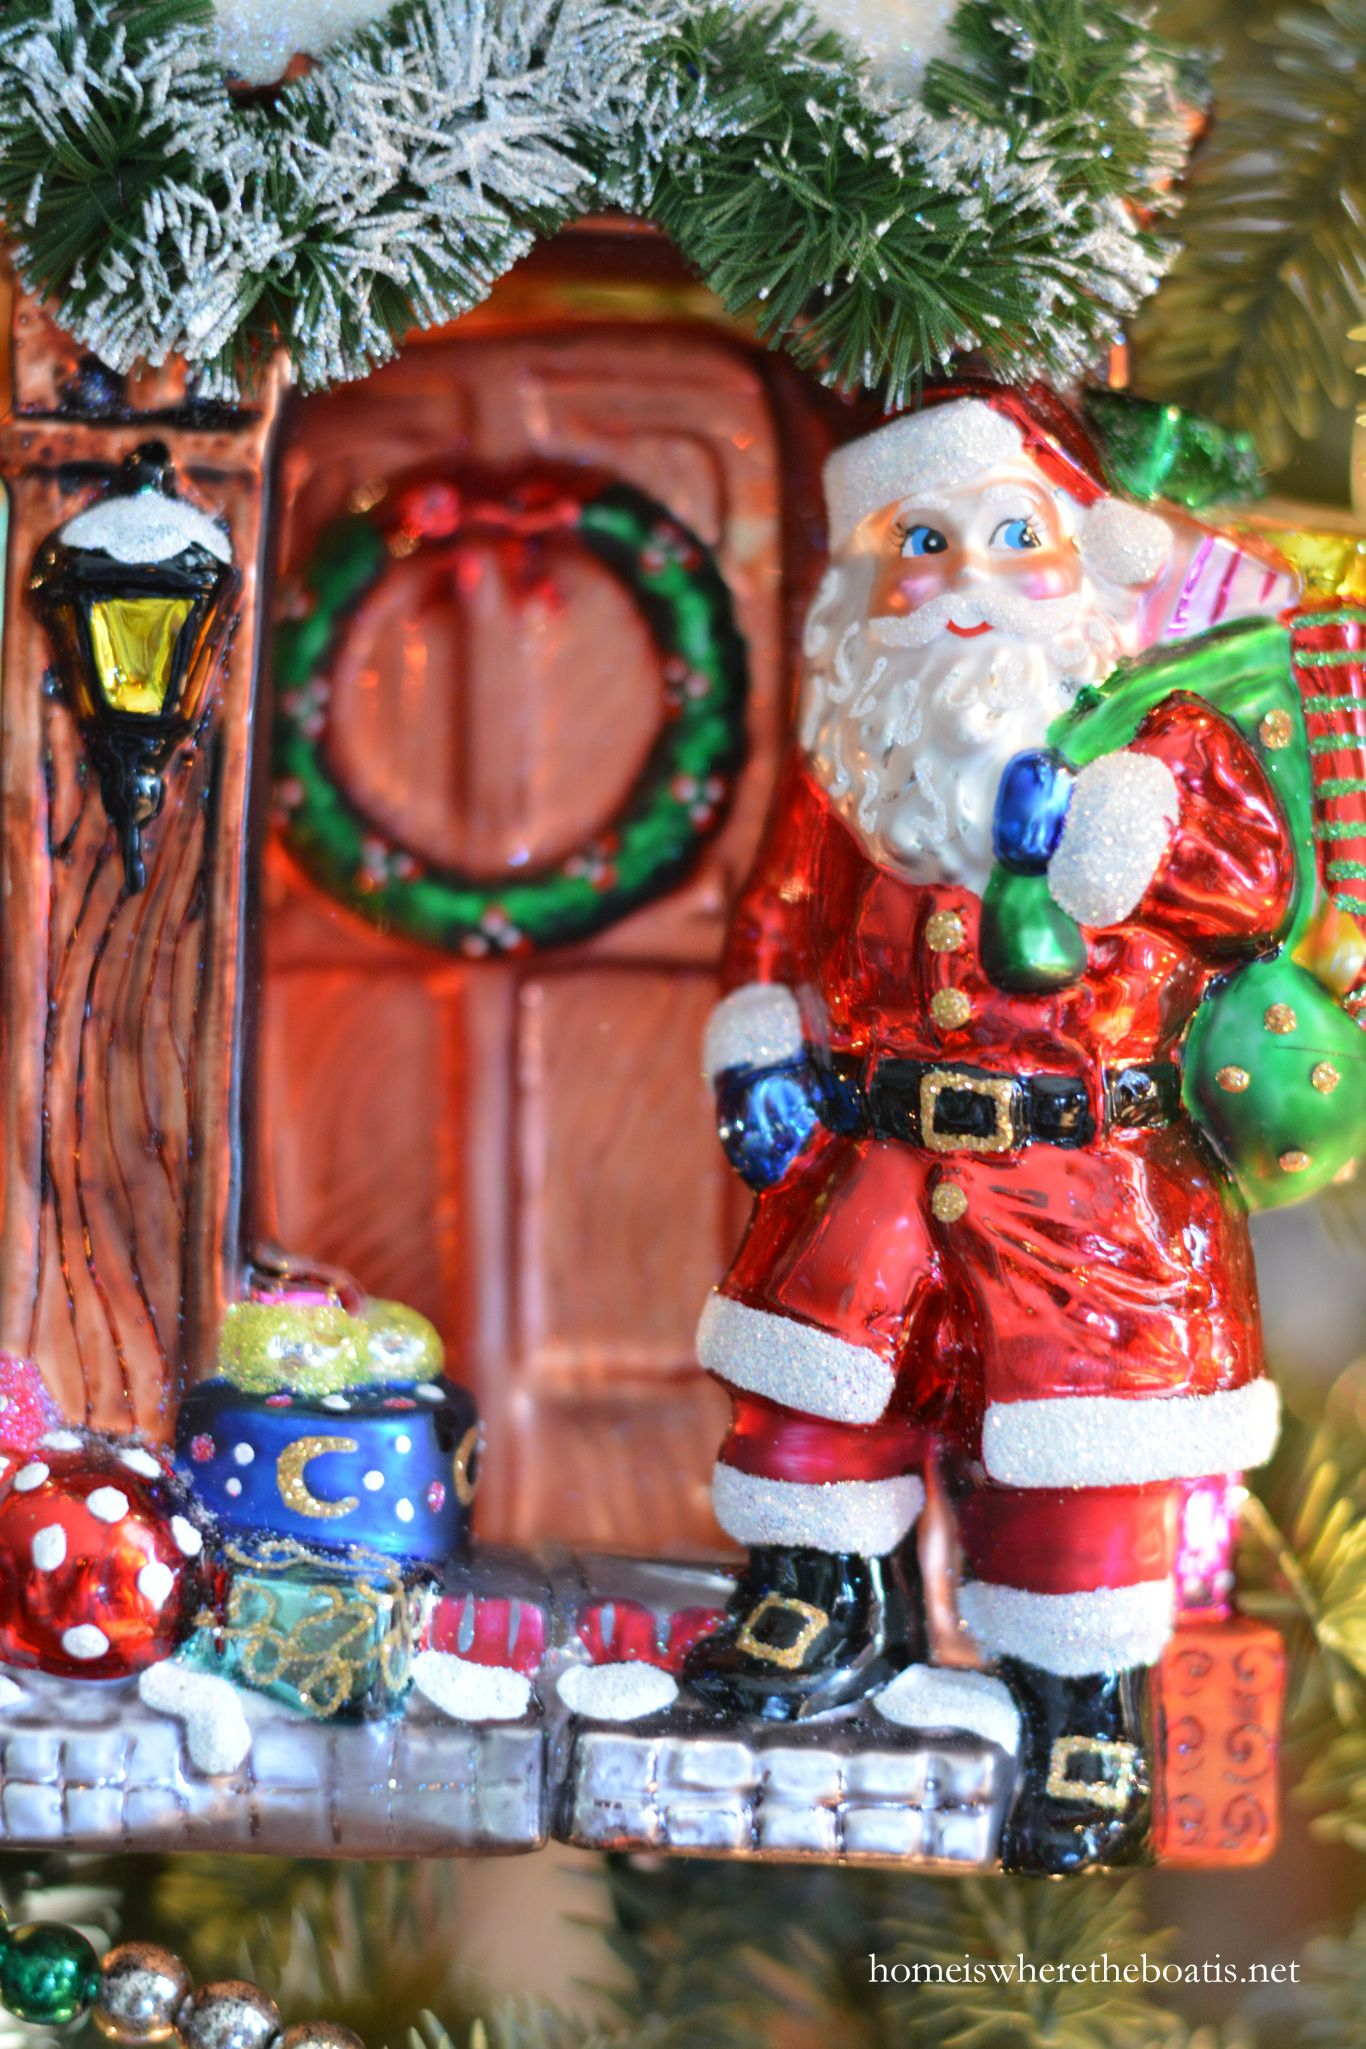 A Visit from St. Nicholas on the Tree | homeiswheretheboatis.net #Christmas #Radko